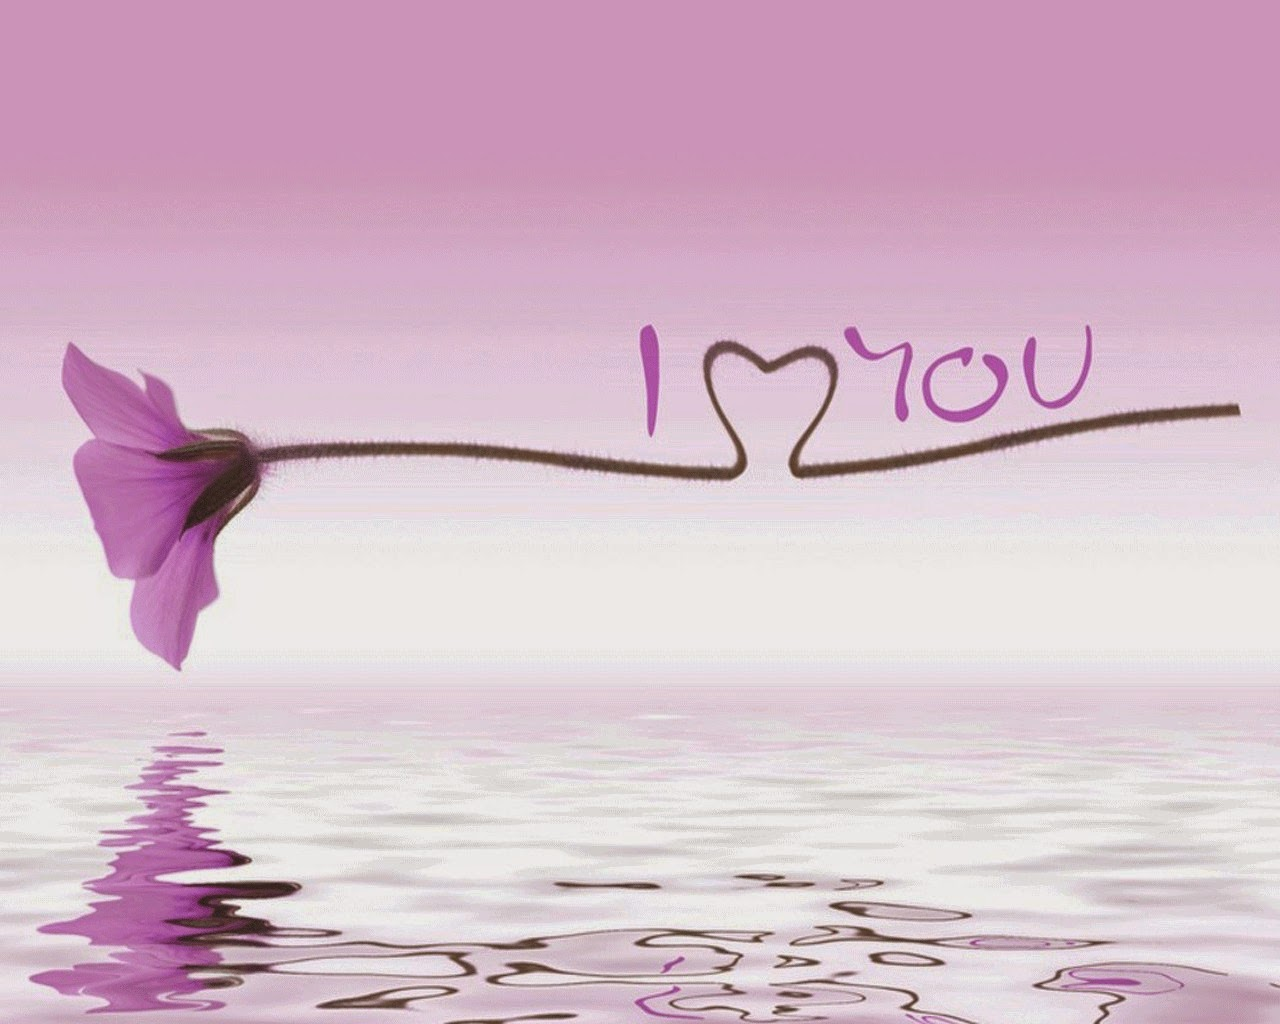 Desktop Wallpapers Made With Love - Romantic Hindi Emotional Love Quotes - HD Wallpaper